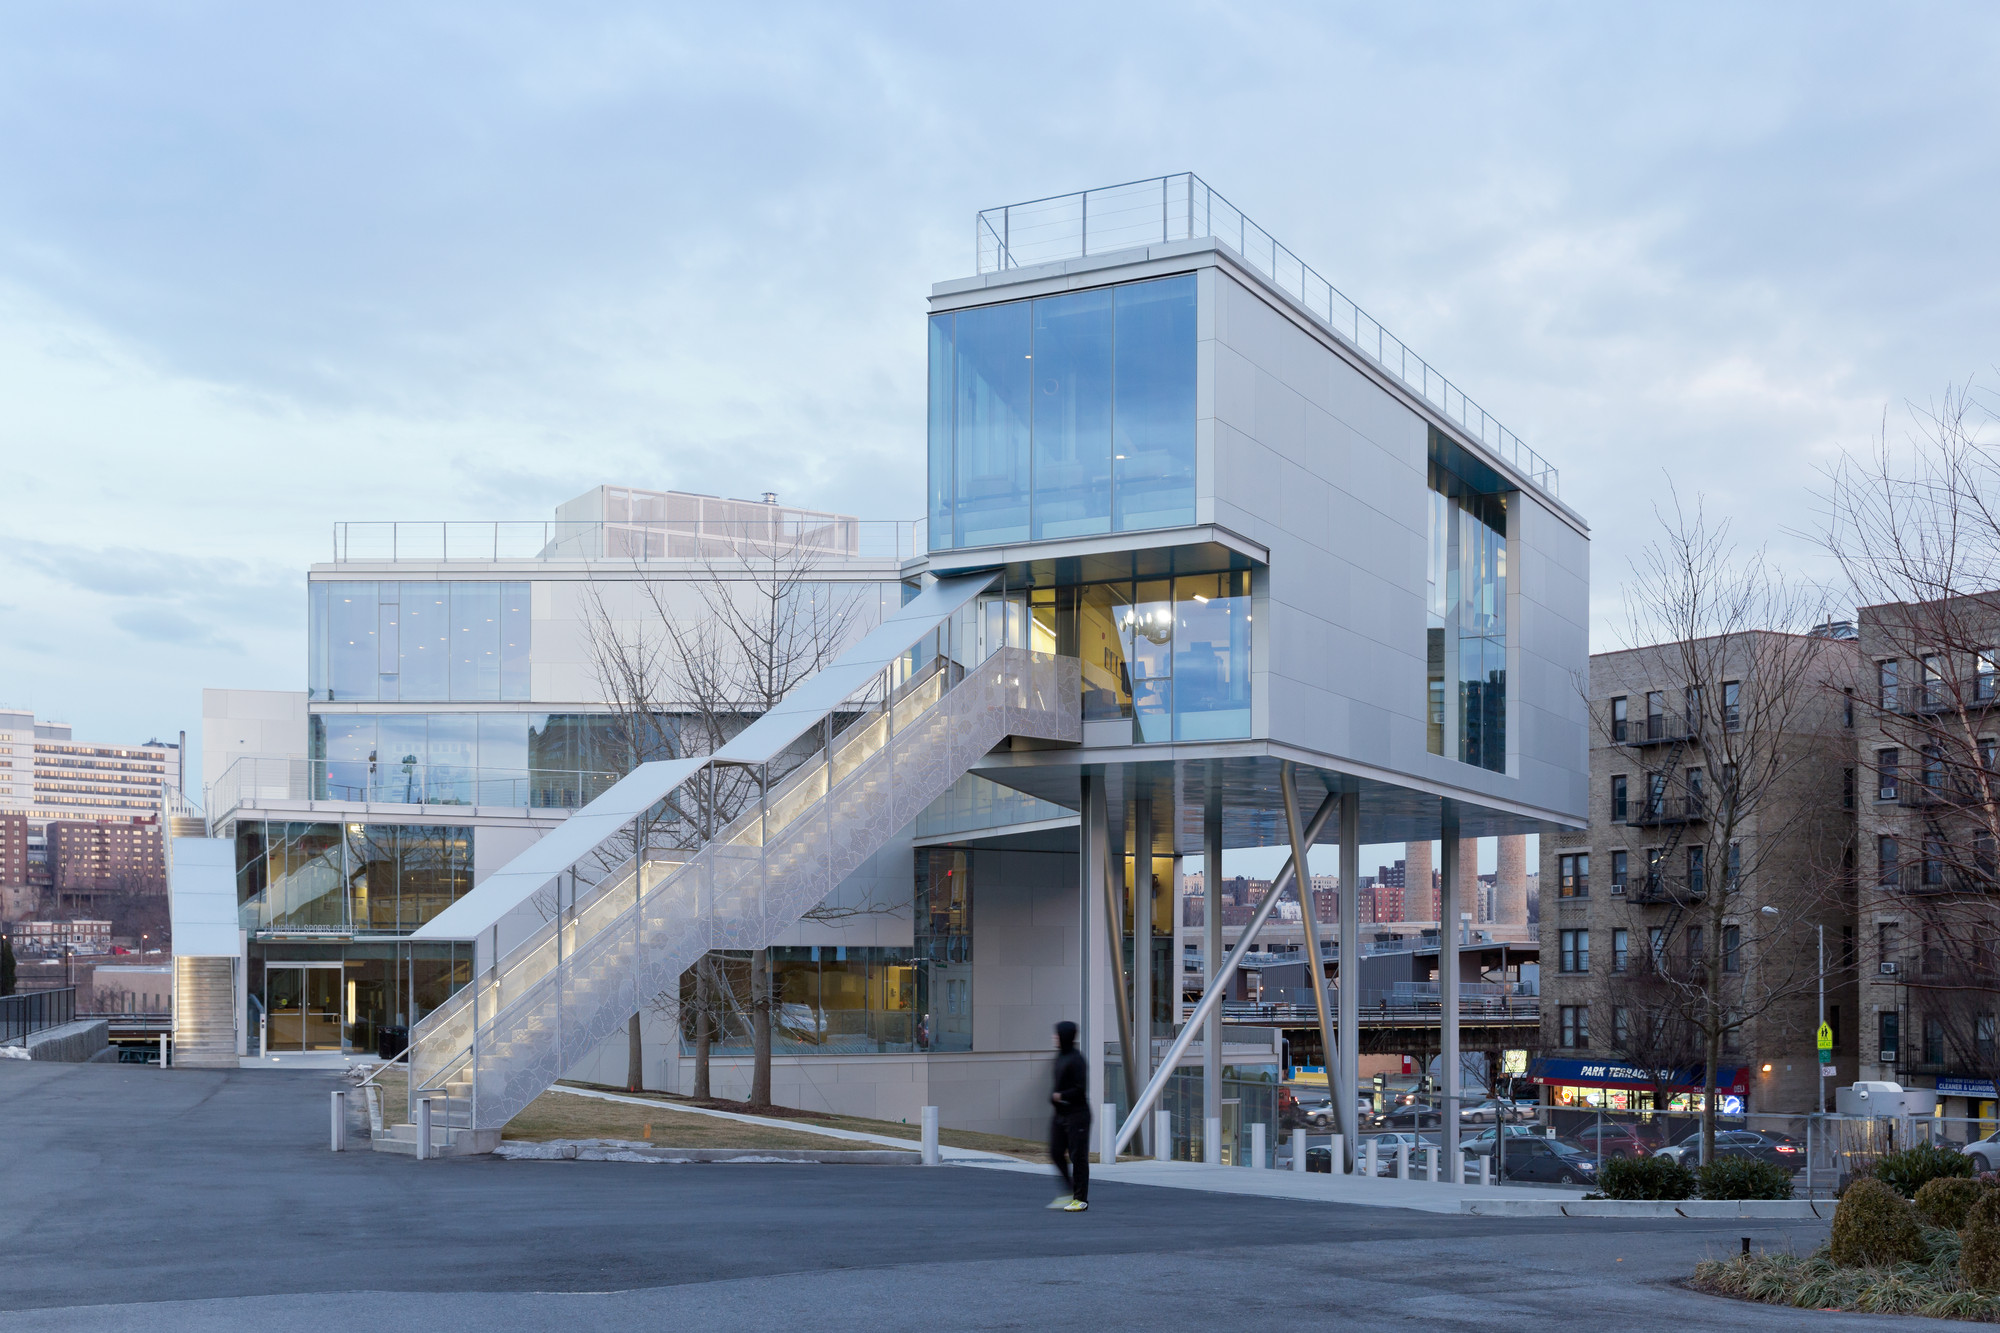 Campbell sports center steven holl architects archdaily for Center for architecture nyc